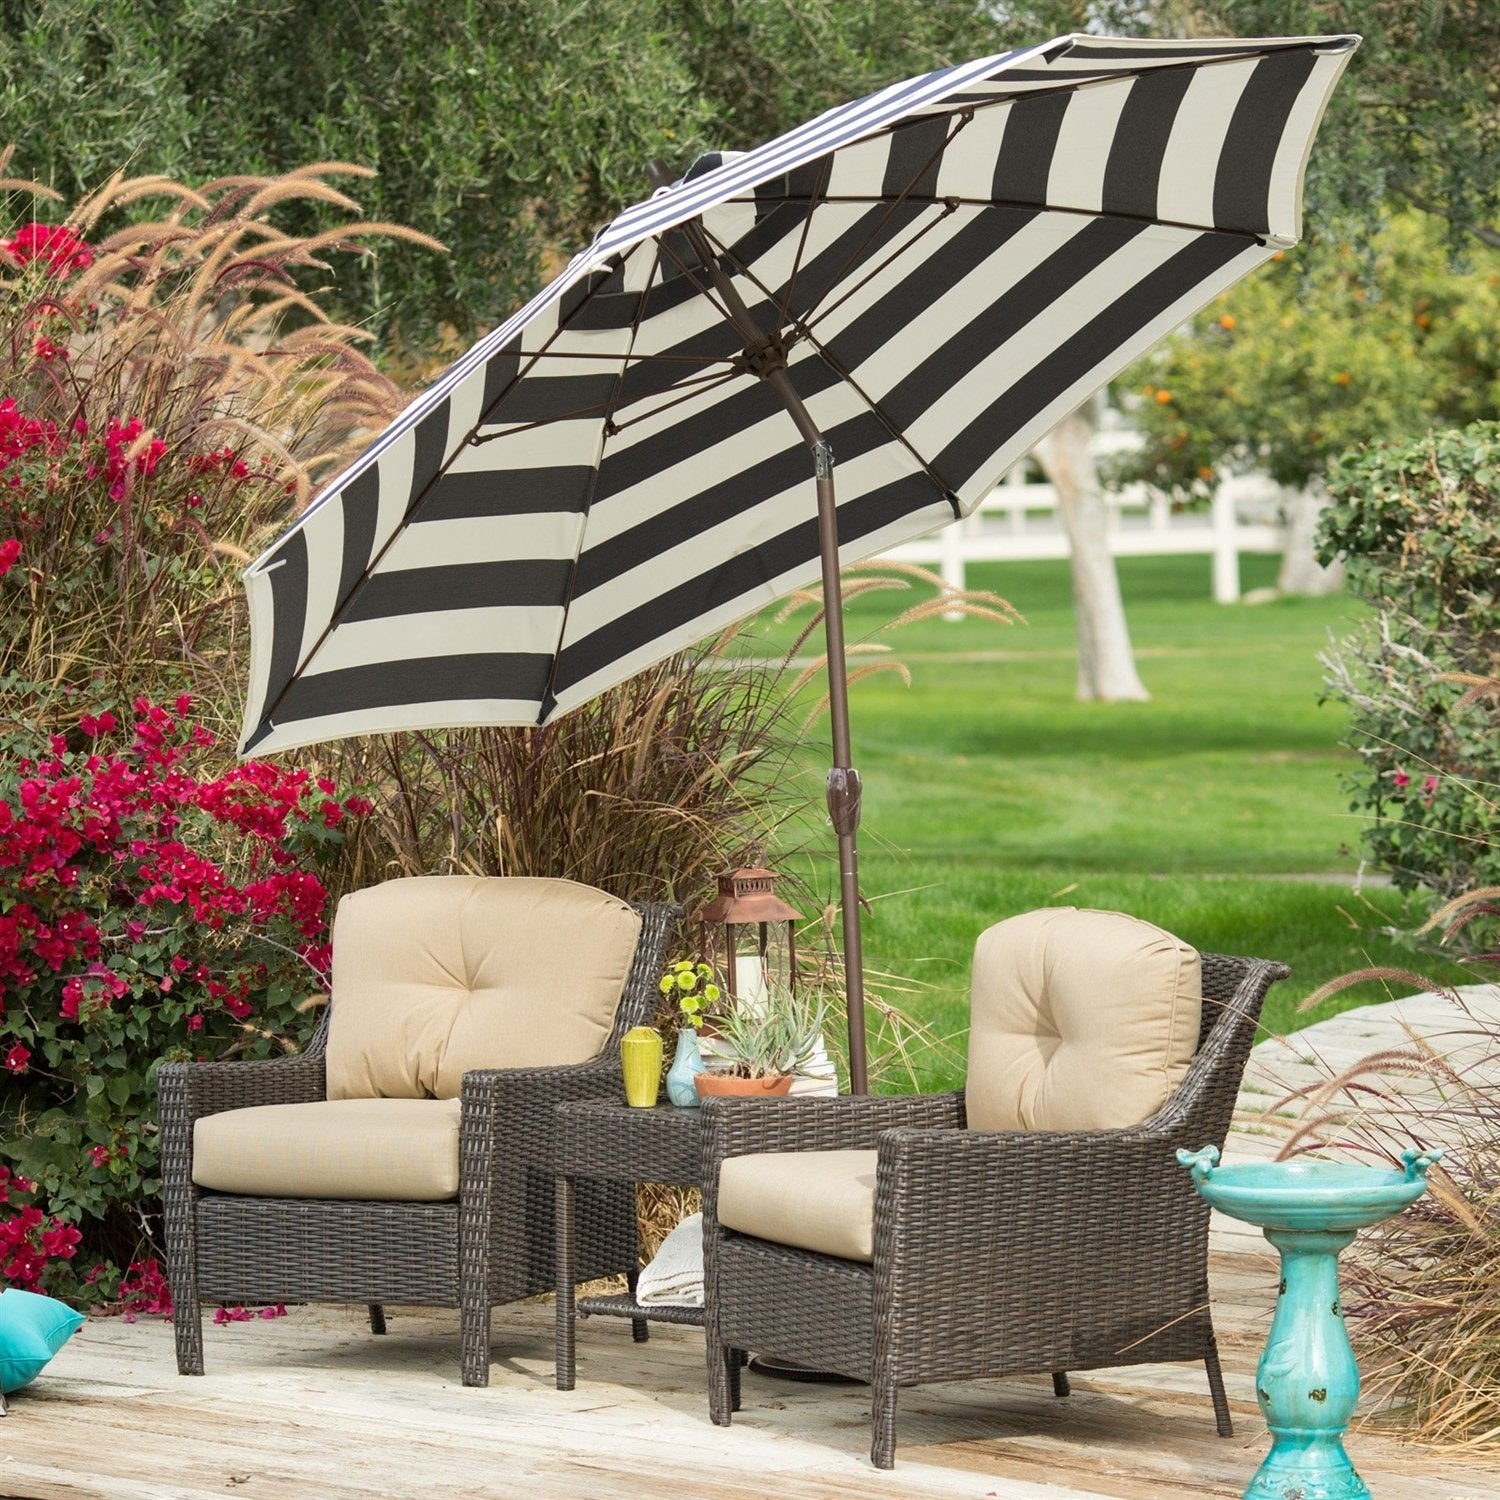 7.5-Ft Patio Umbrella with Dark Navy and White Striped Fabric & Metal Pole